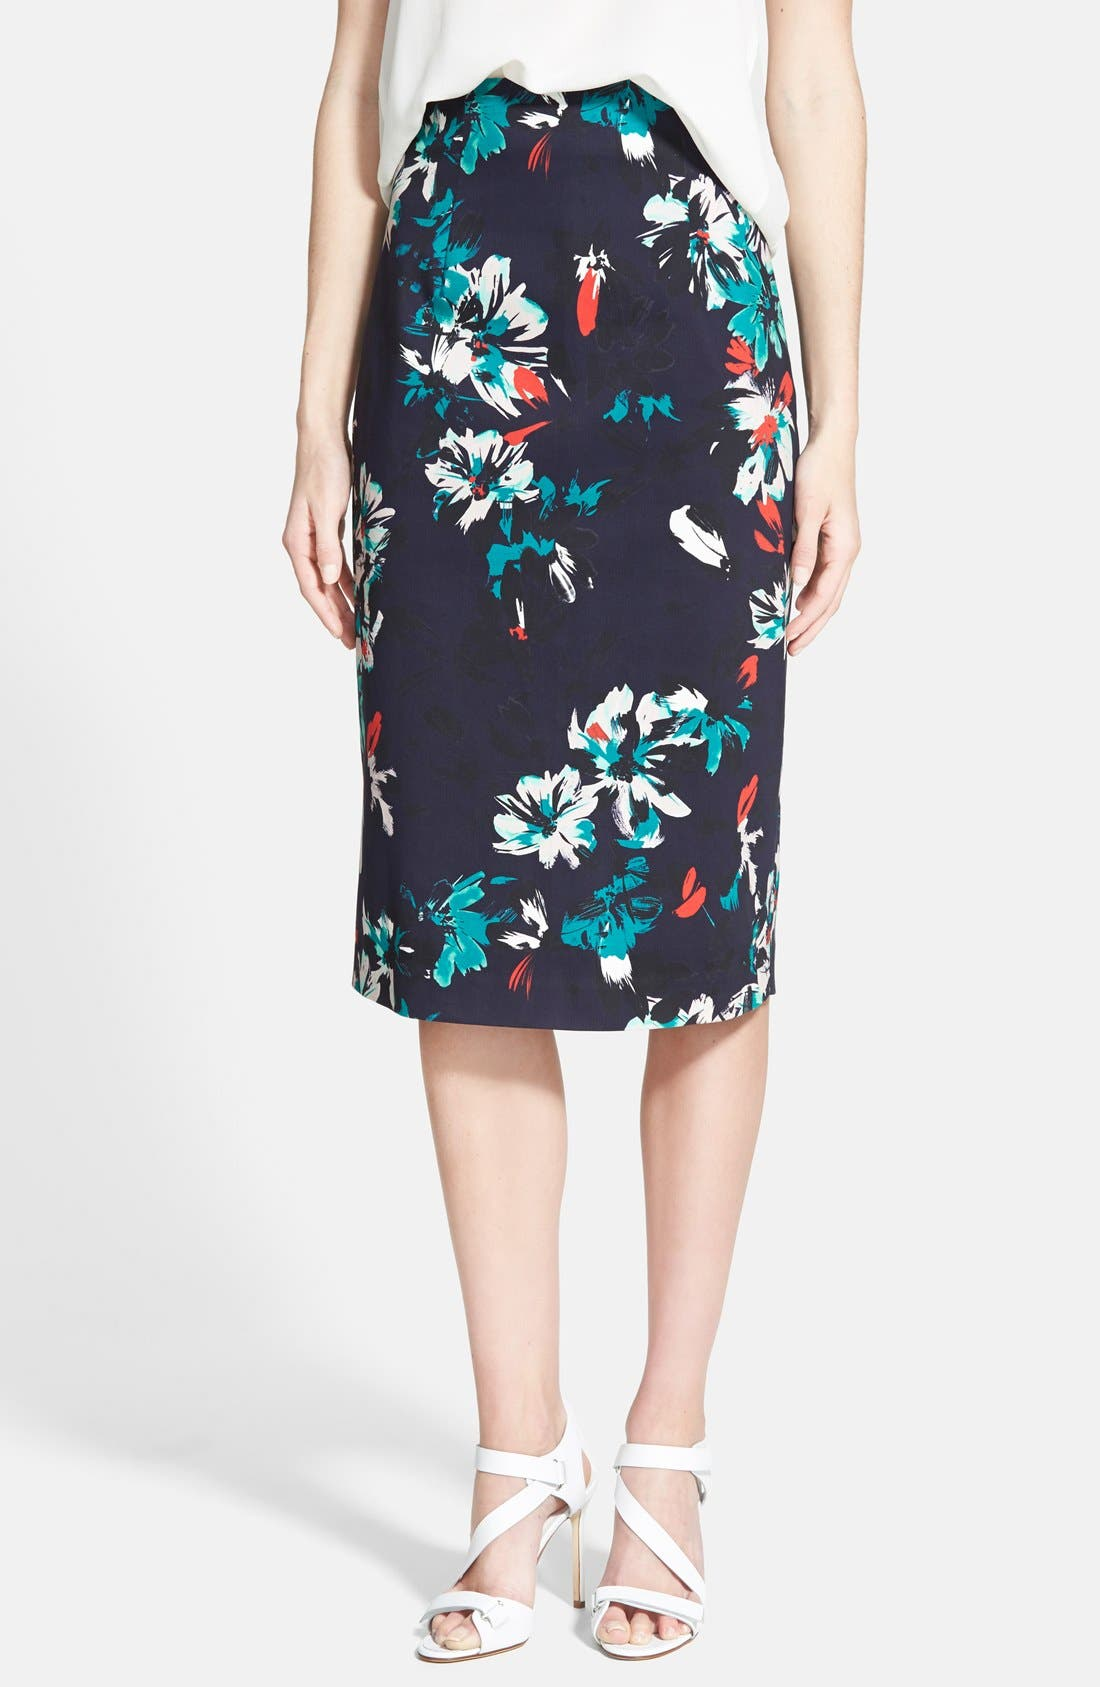 Alternate Image 1 Selected - Chelsea28 High Waist Floral Pencil Skirt